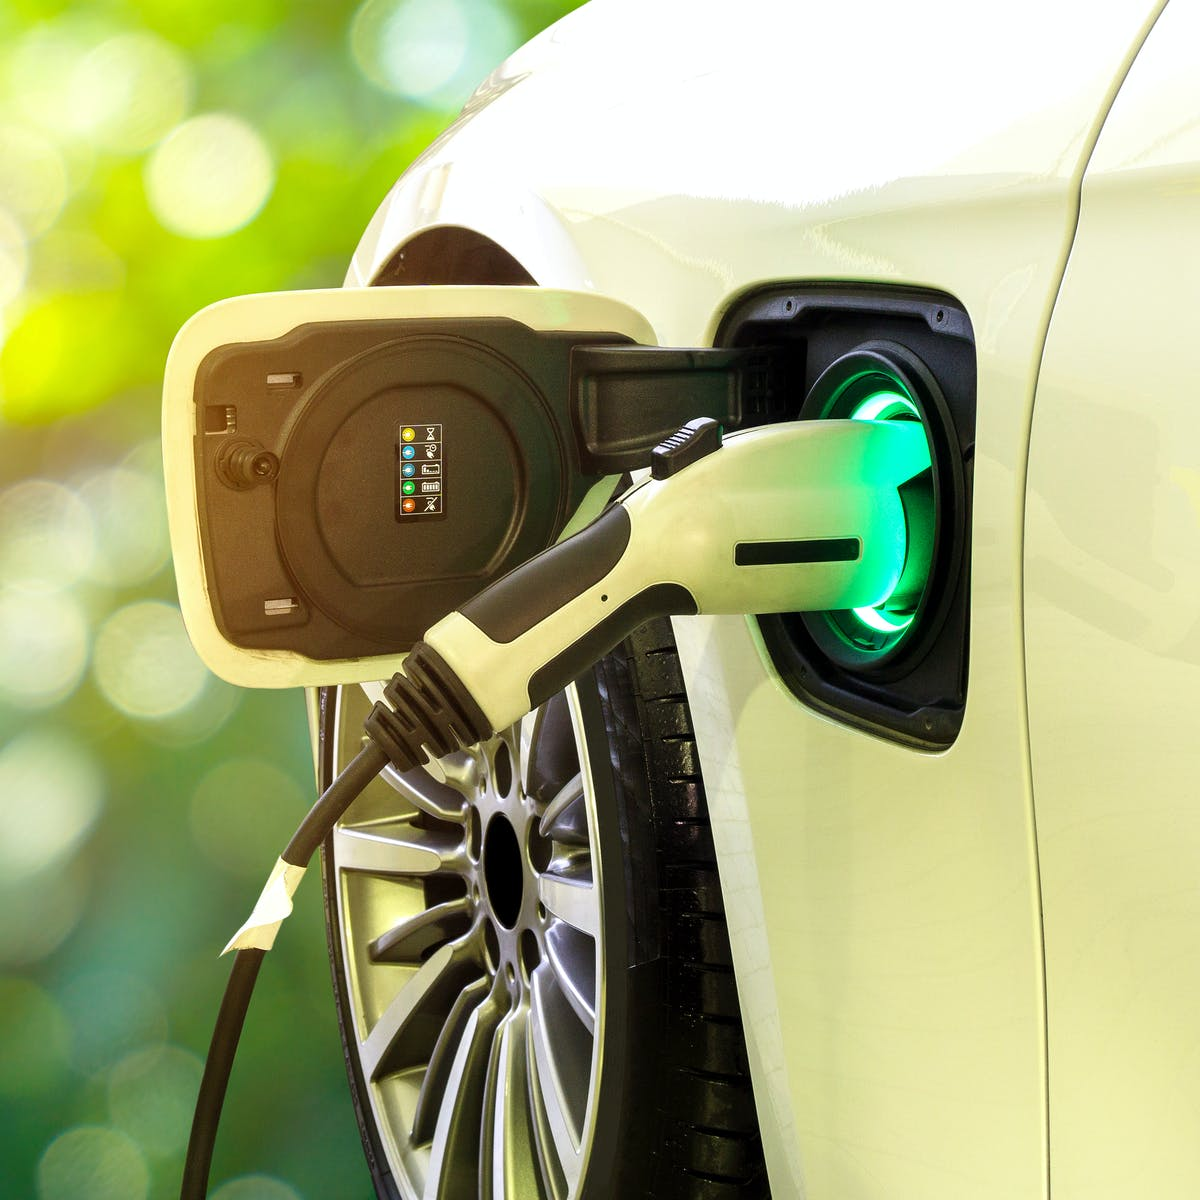 Electric cars could pose a major environmental challenge if firms don't act